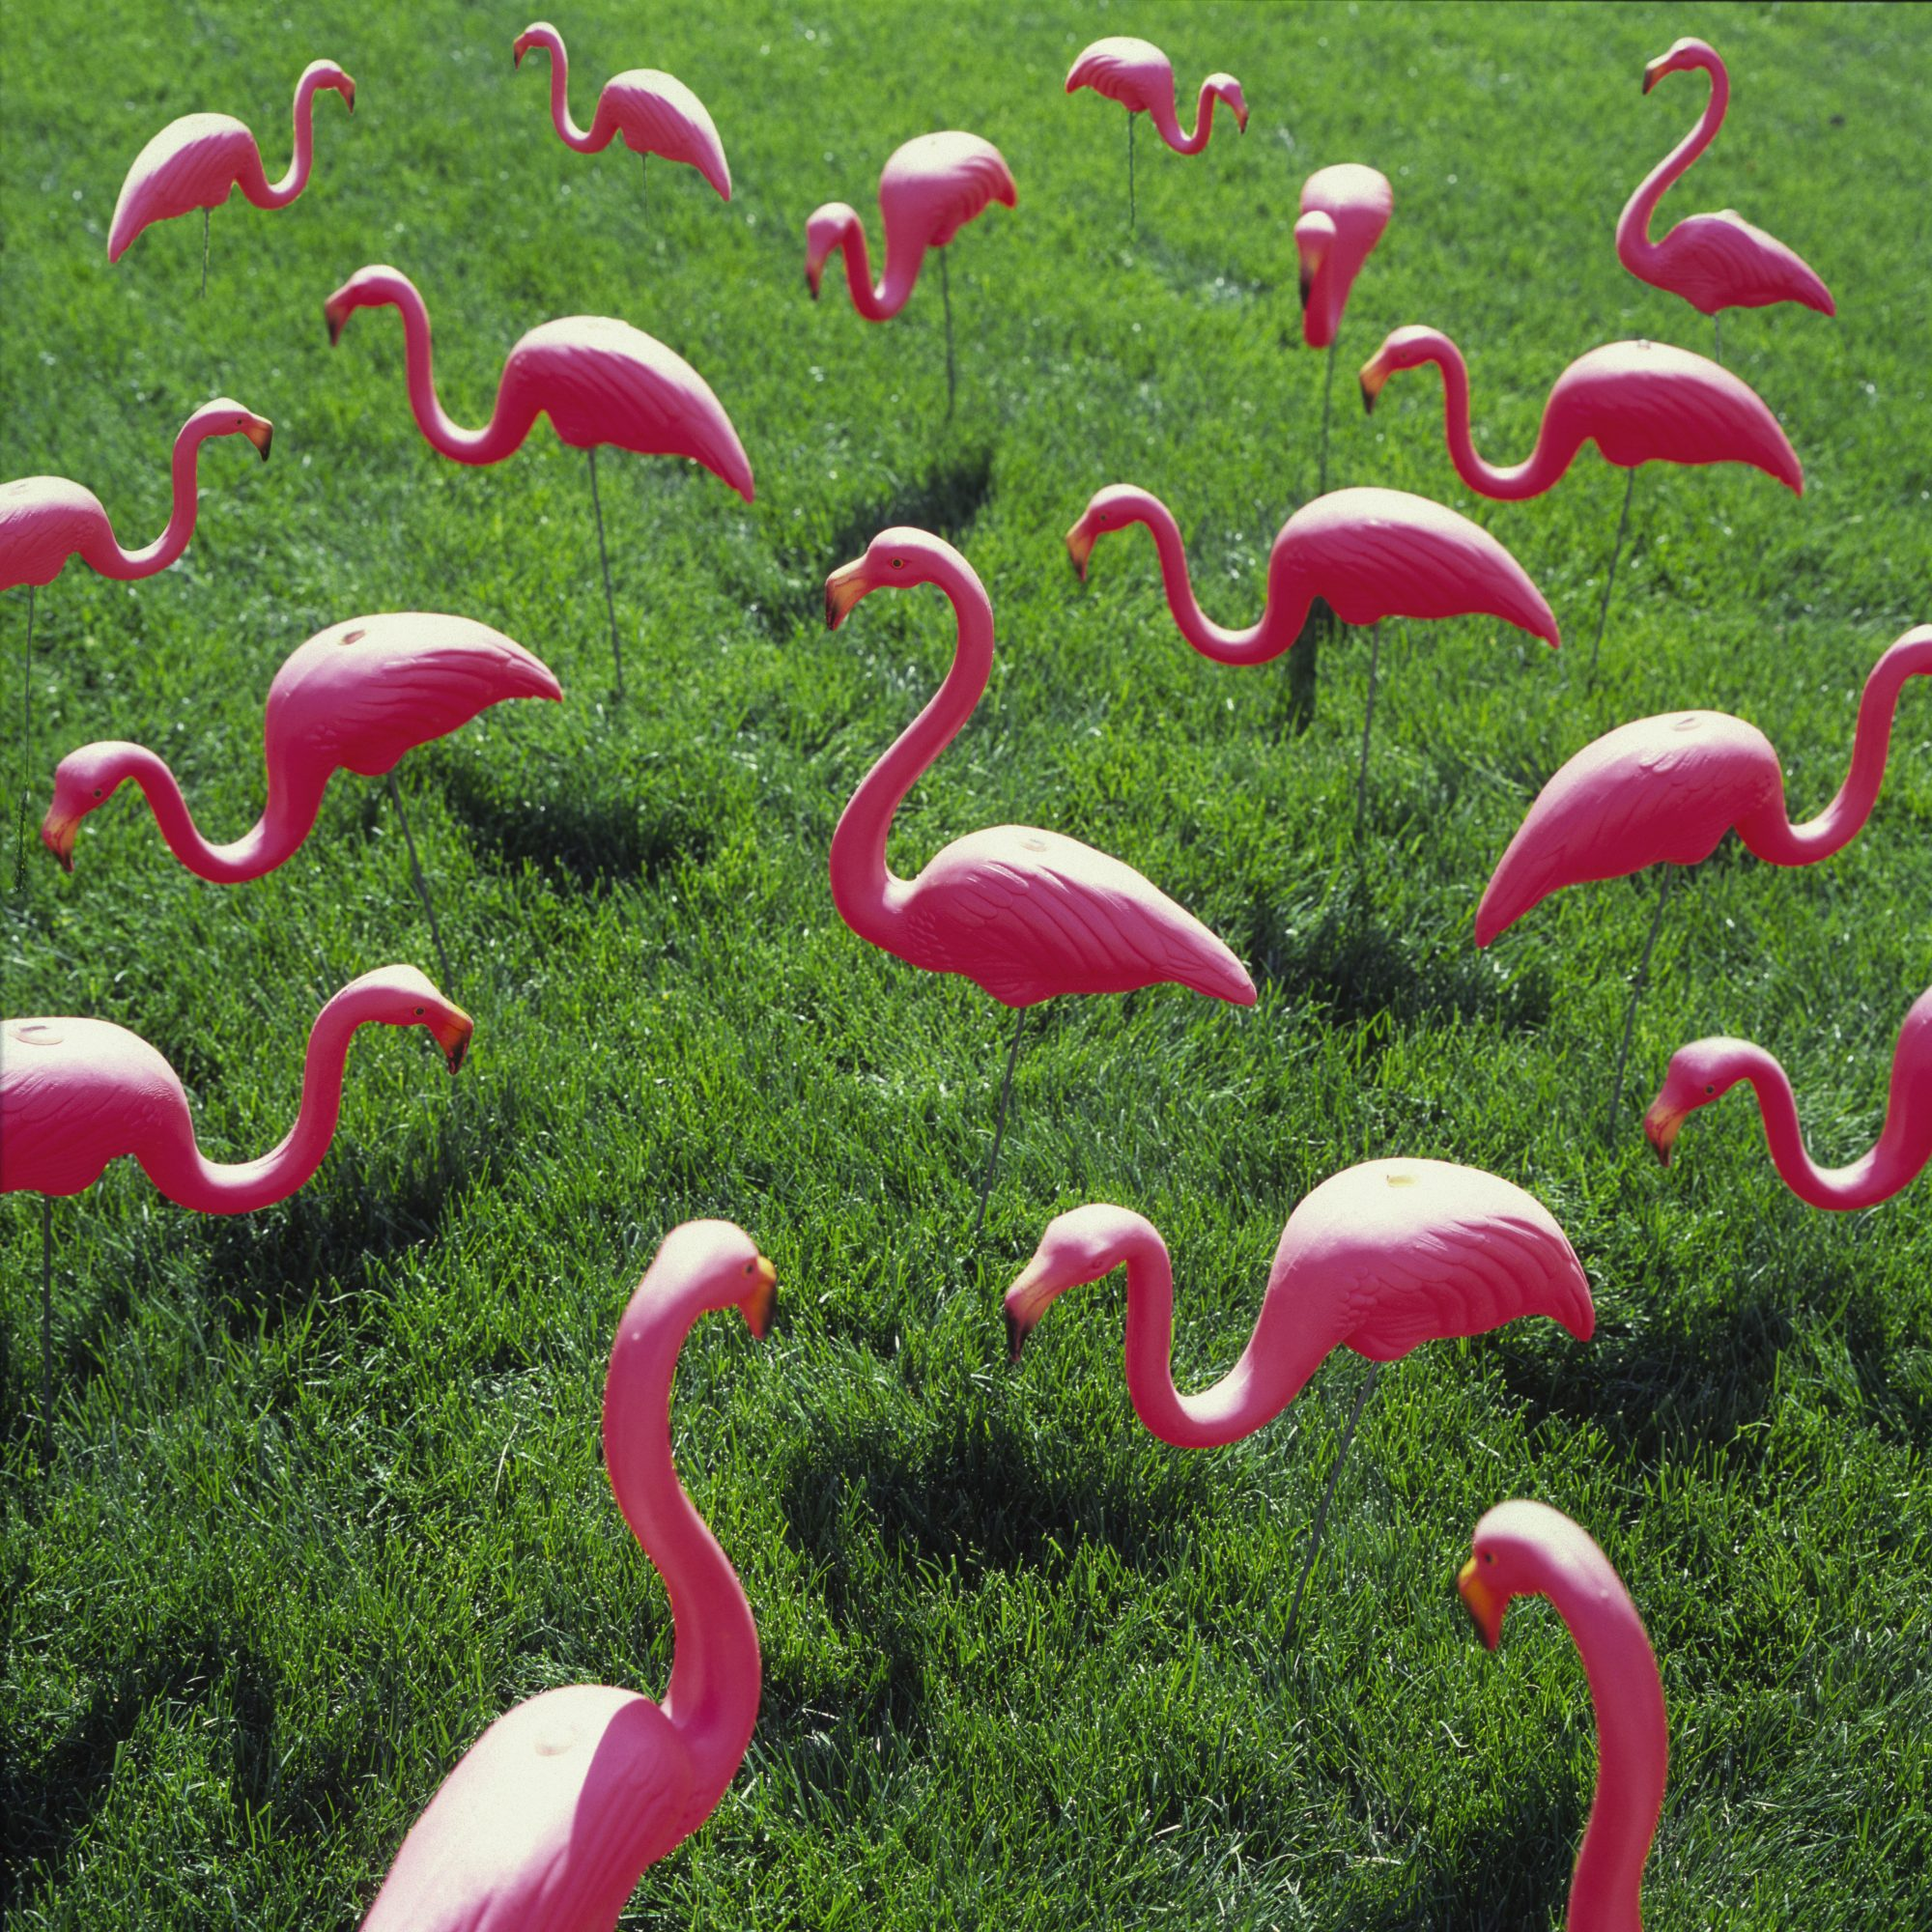 Plastic pink flamingos on lawn, full frame